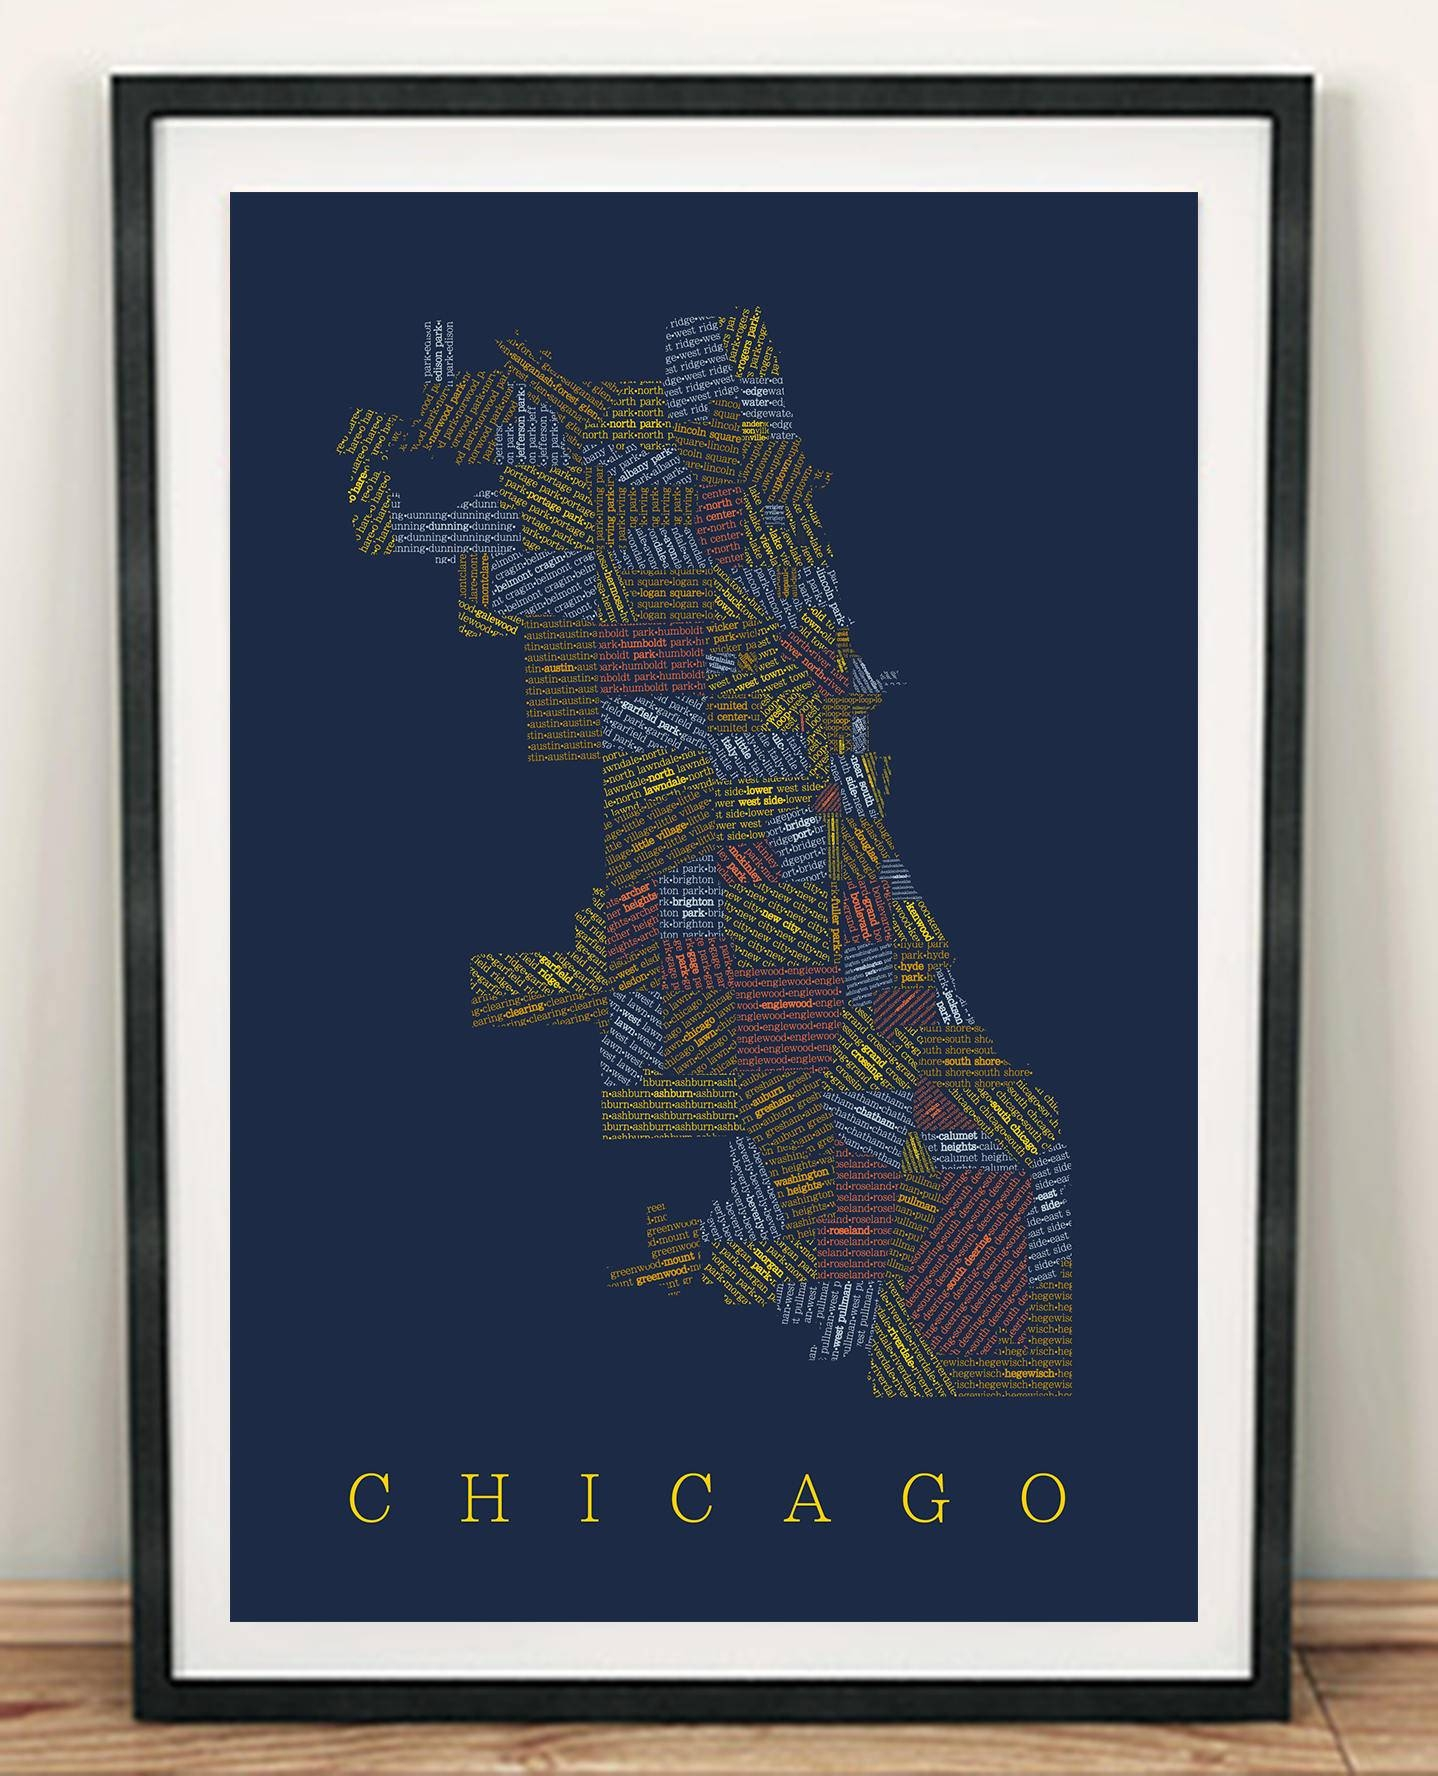 Chicago Neighborhood Map Chicago Map Chicago Art Wall Art Regarding Most Up To Date Chicago Neighborhood Map Wall Art (View 6 of 20)